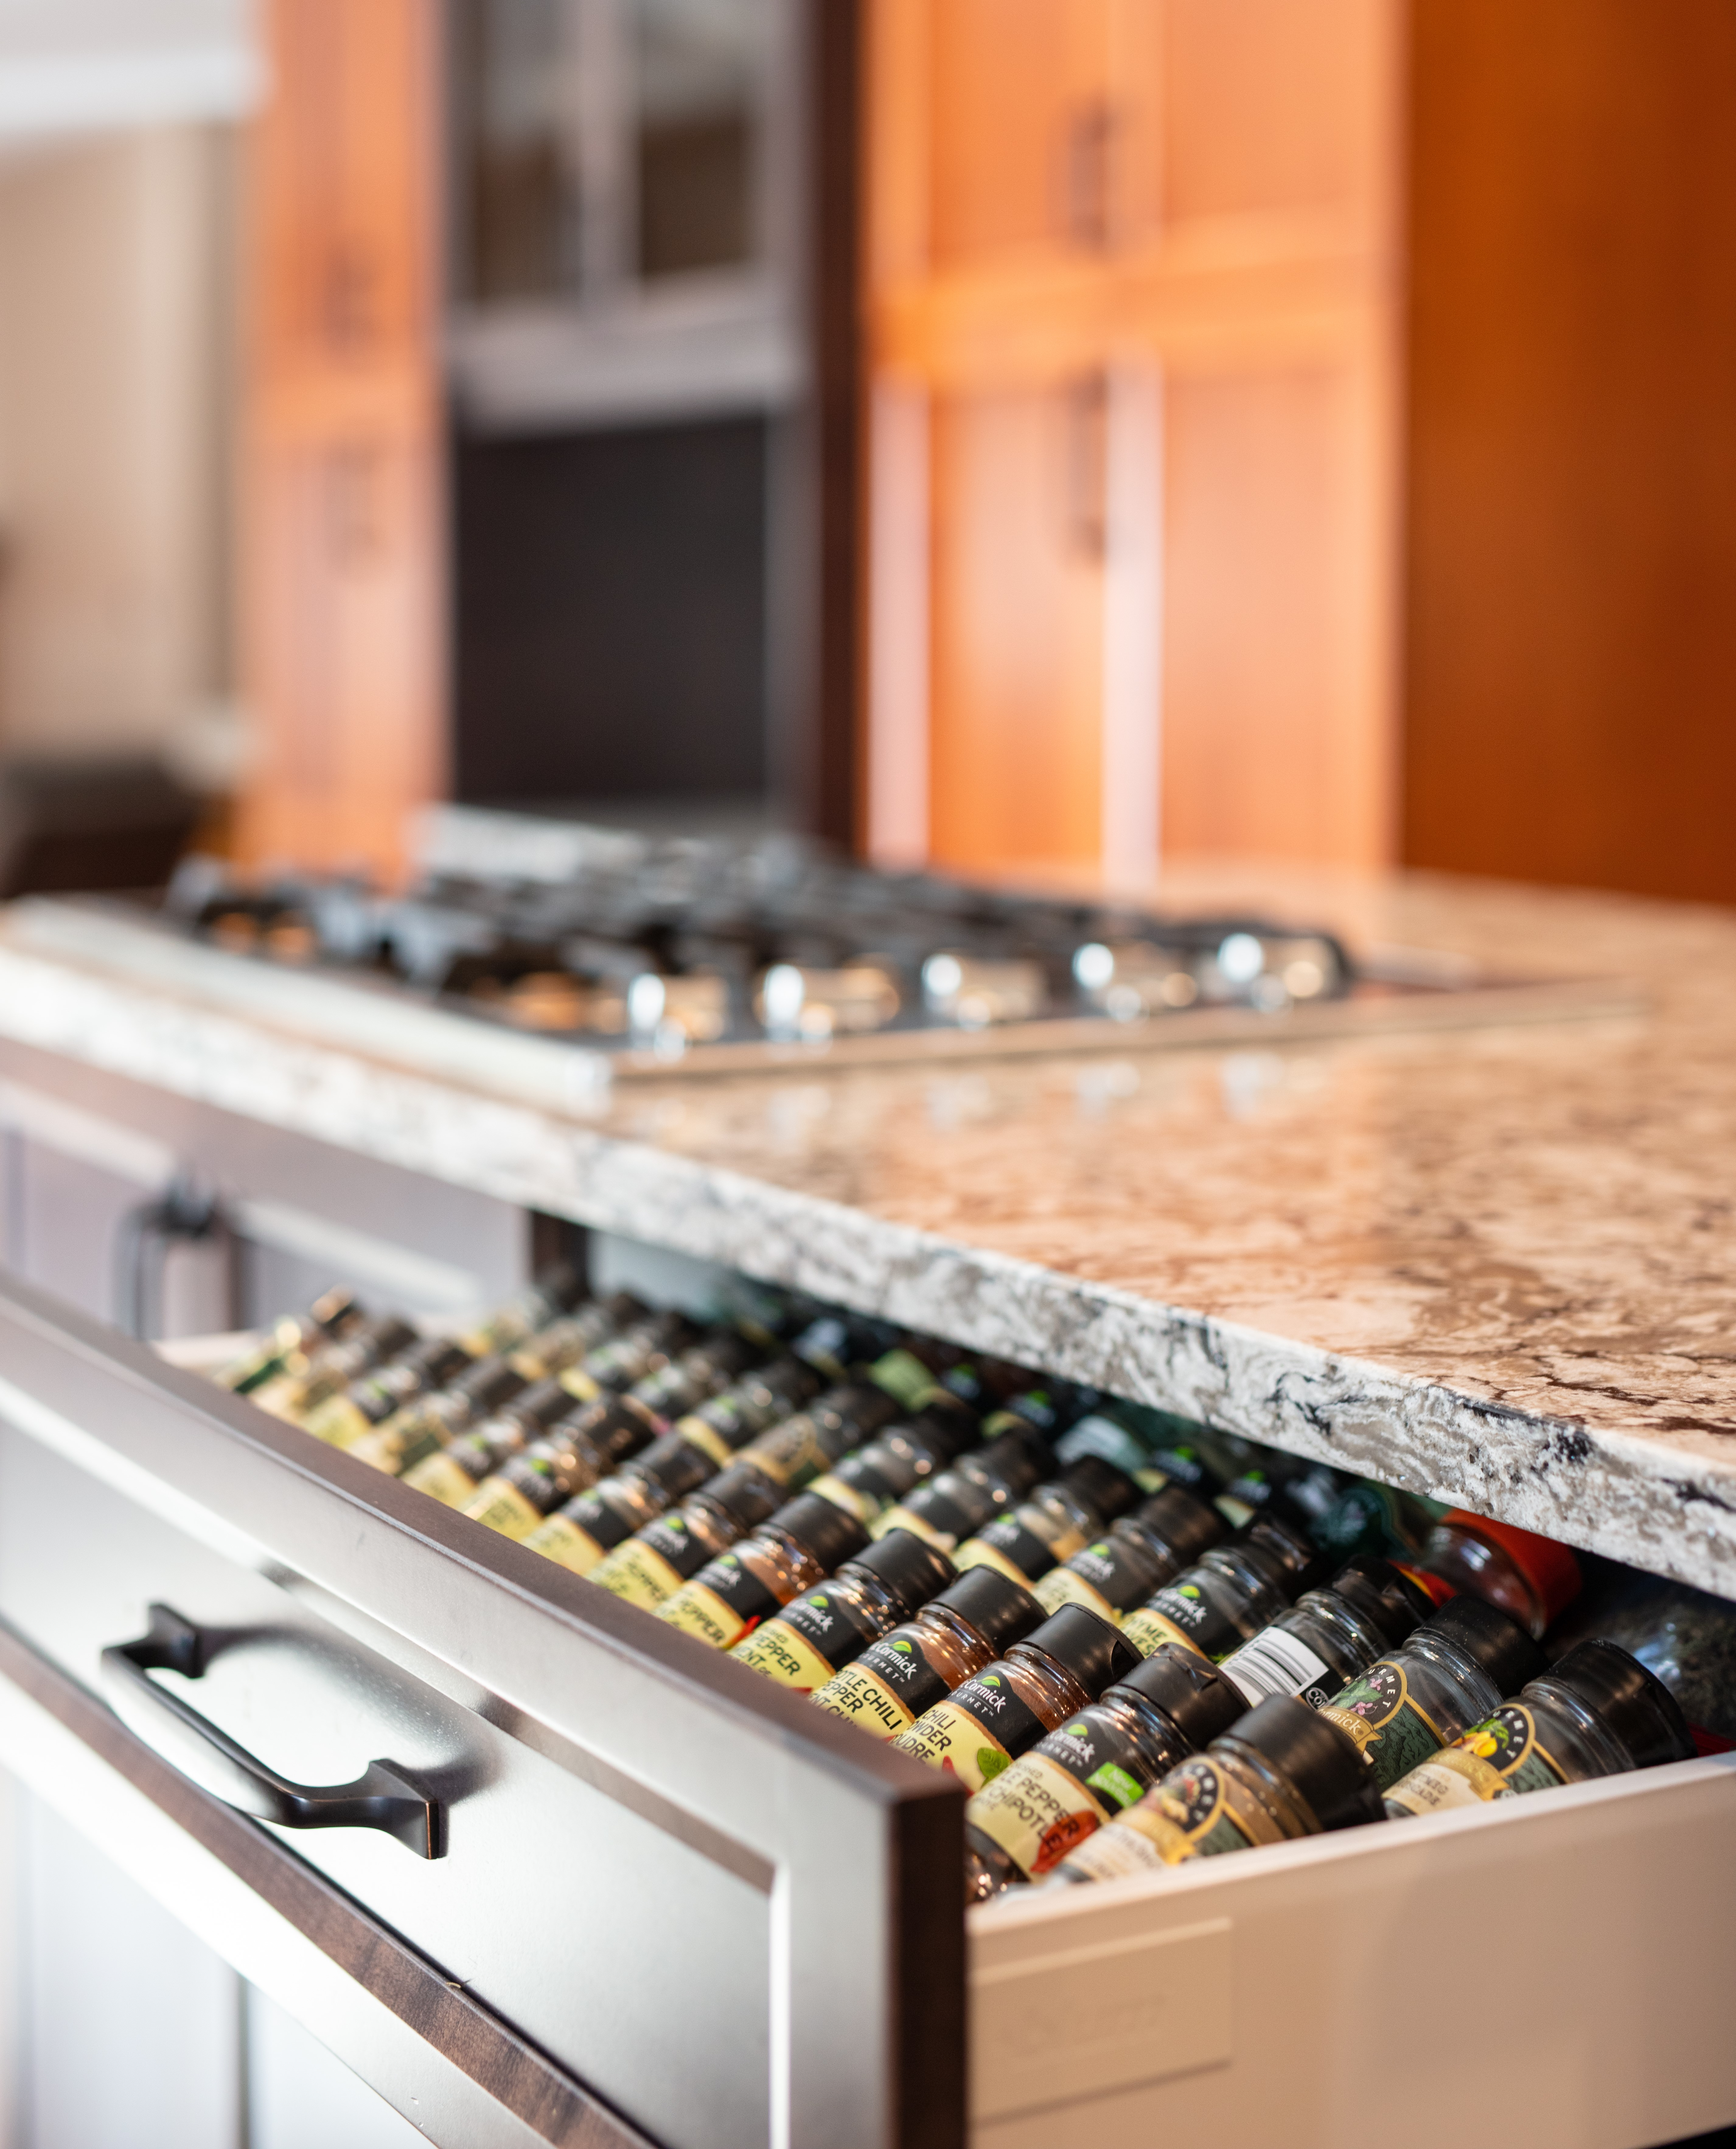 Rich and Dramatic Kitchen accents